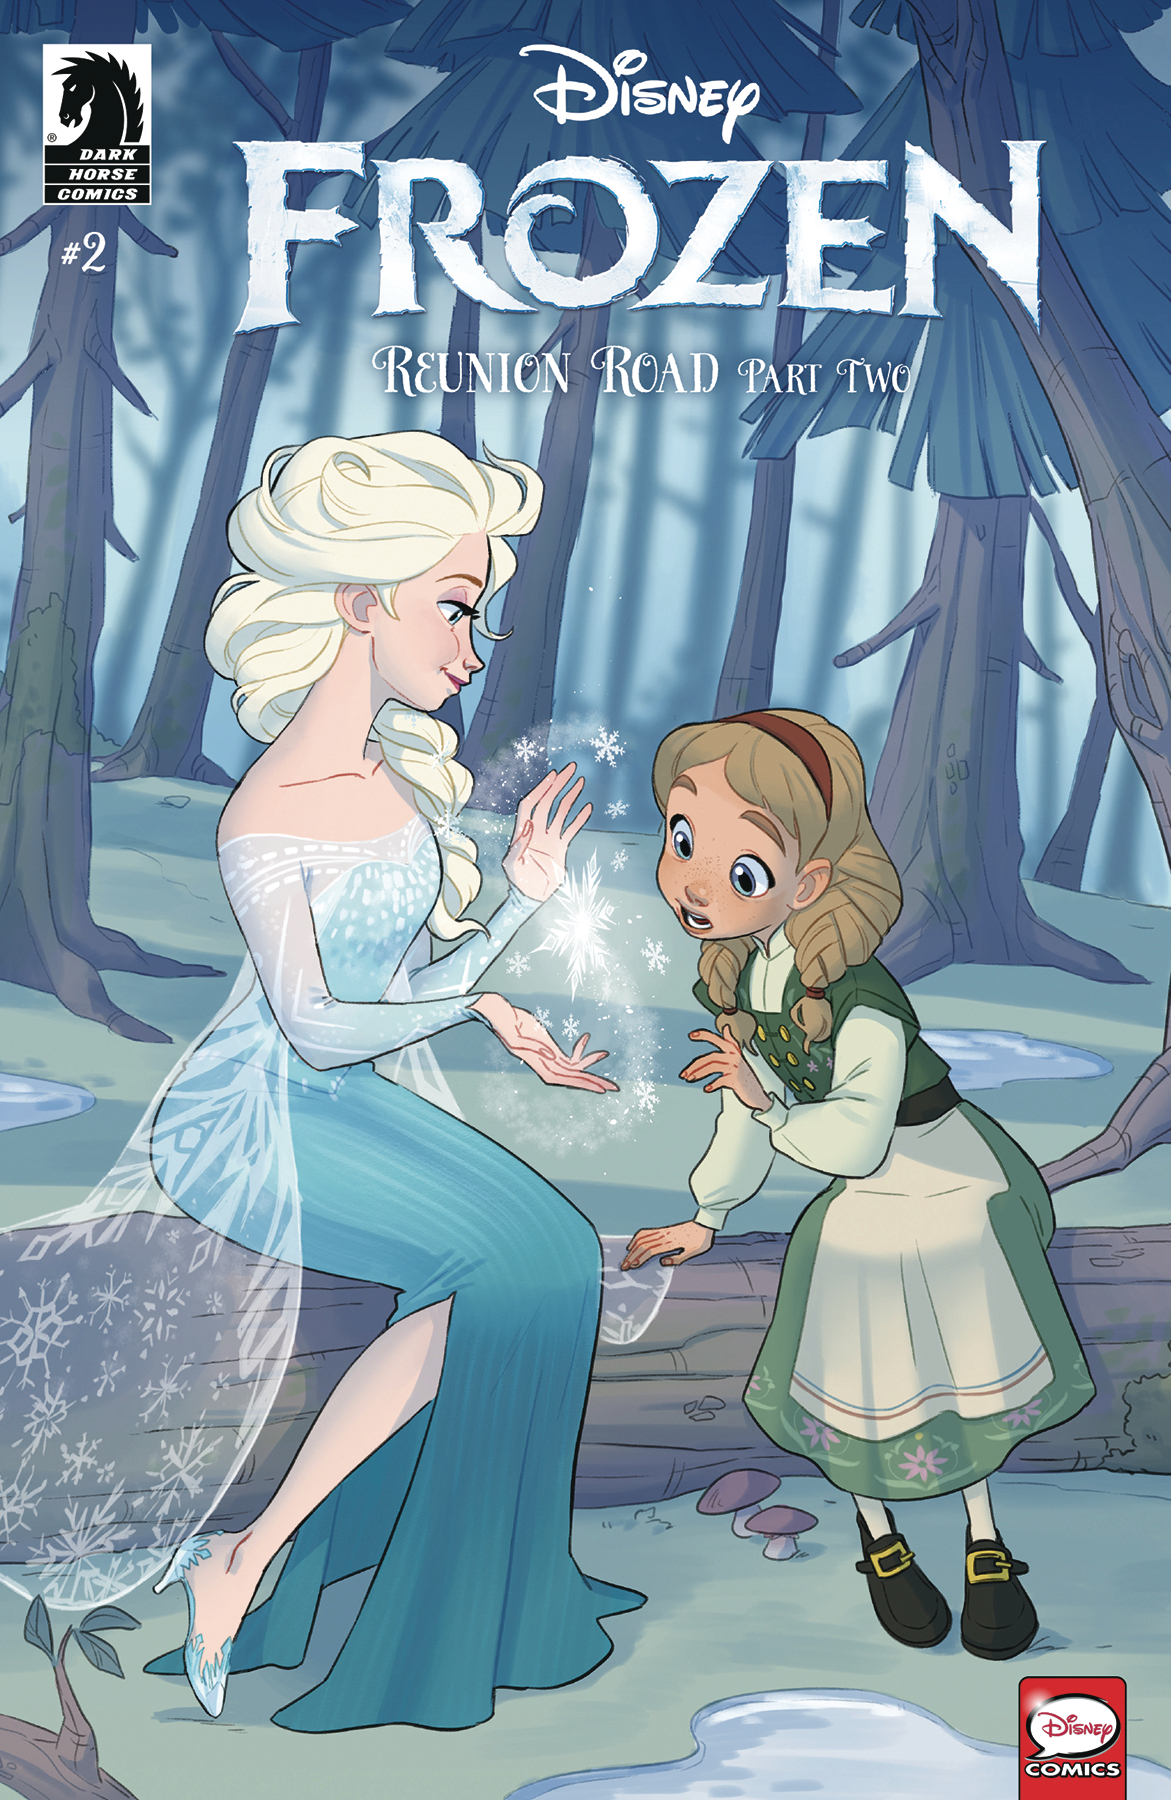 DISNEY FROZEN REUNION ROAD #2 CVR B DICATALDO